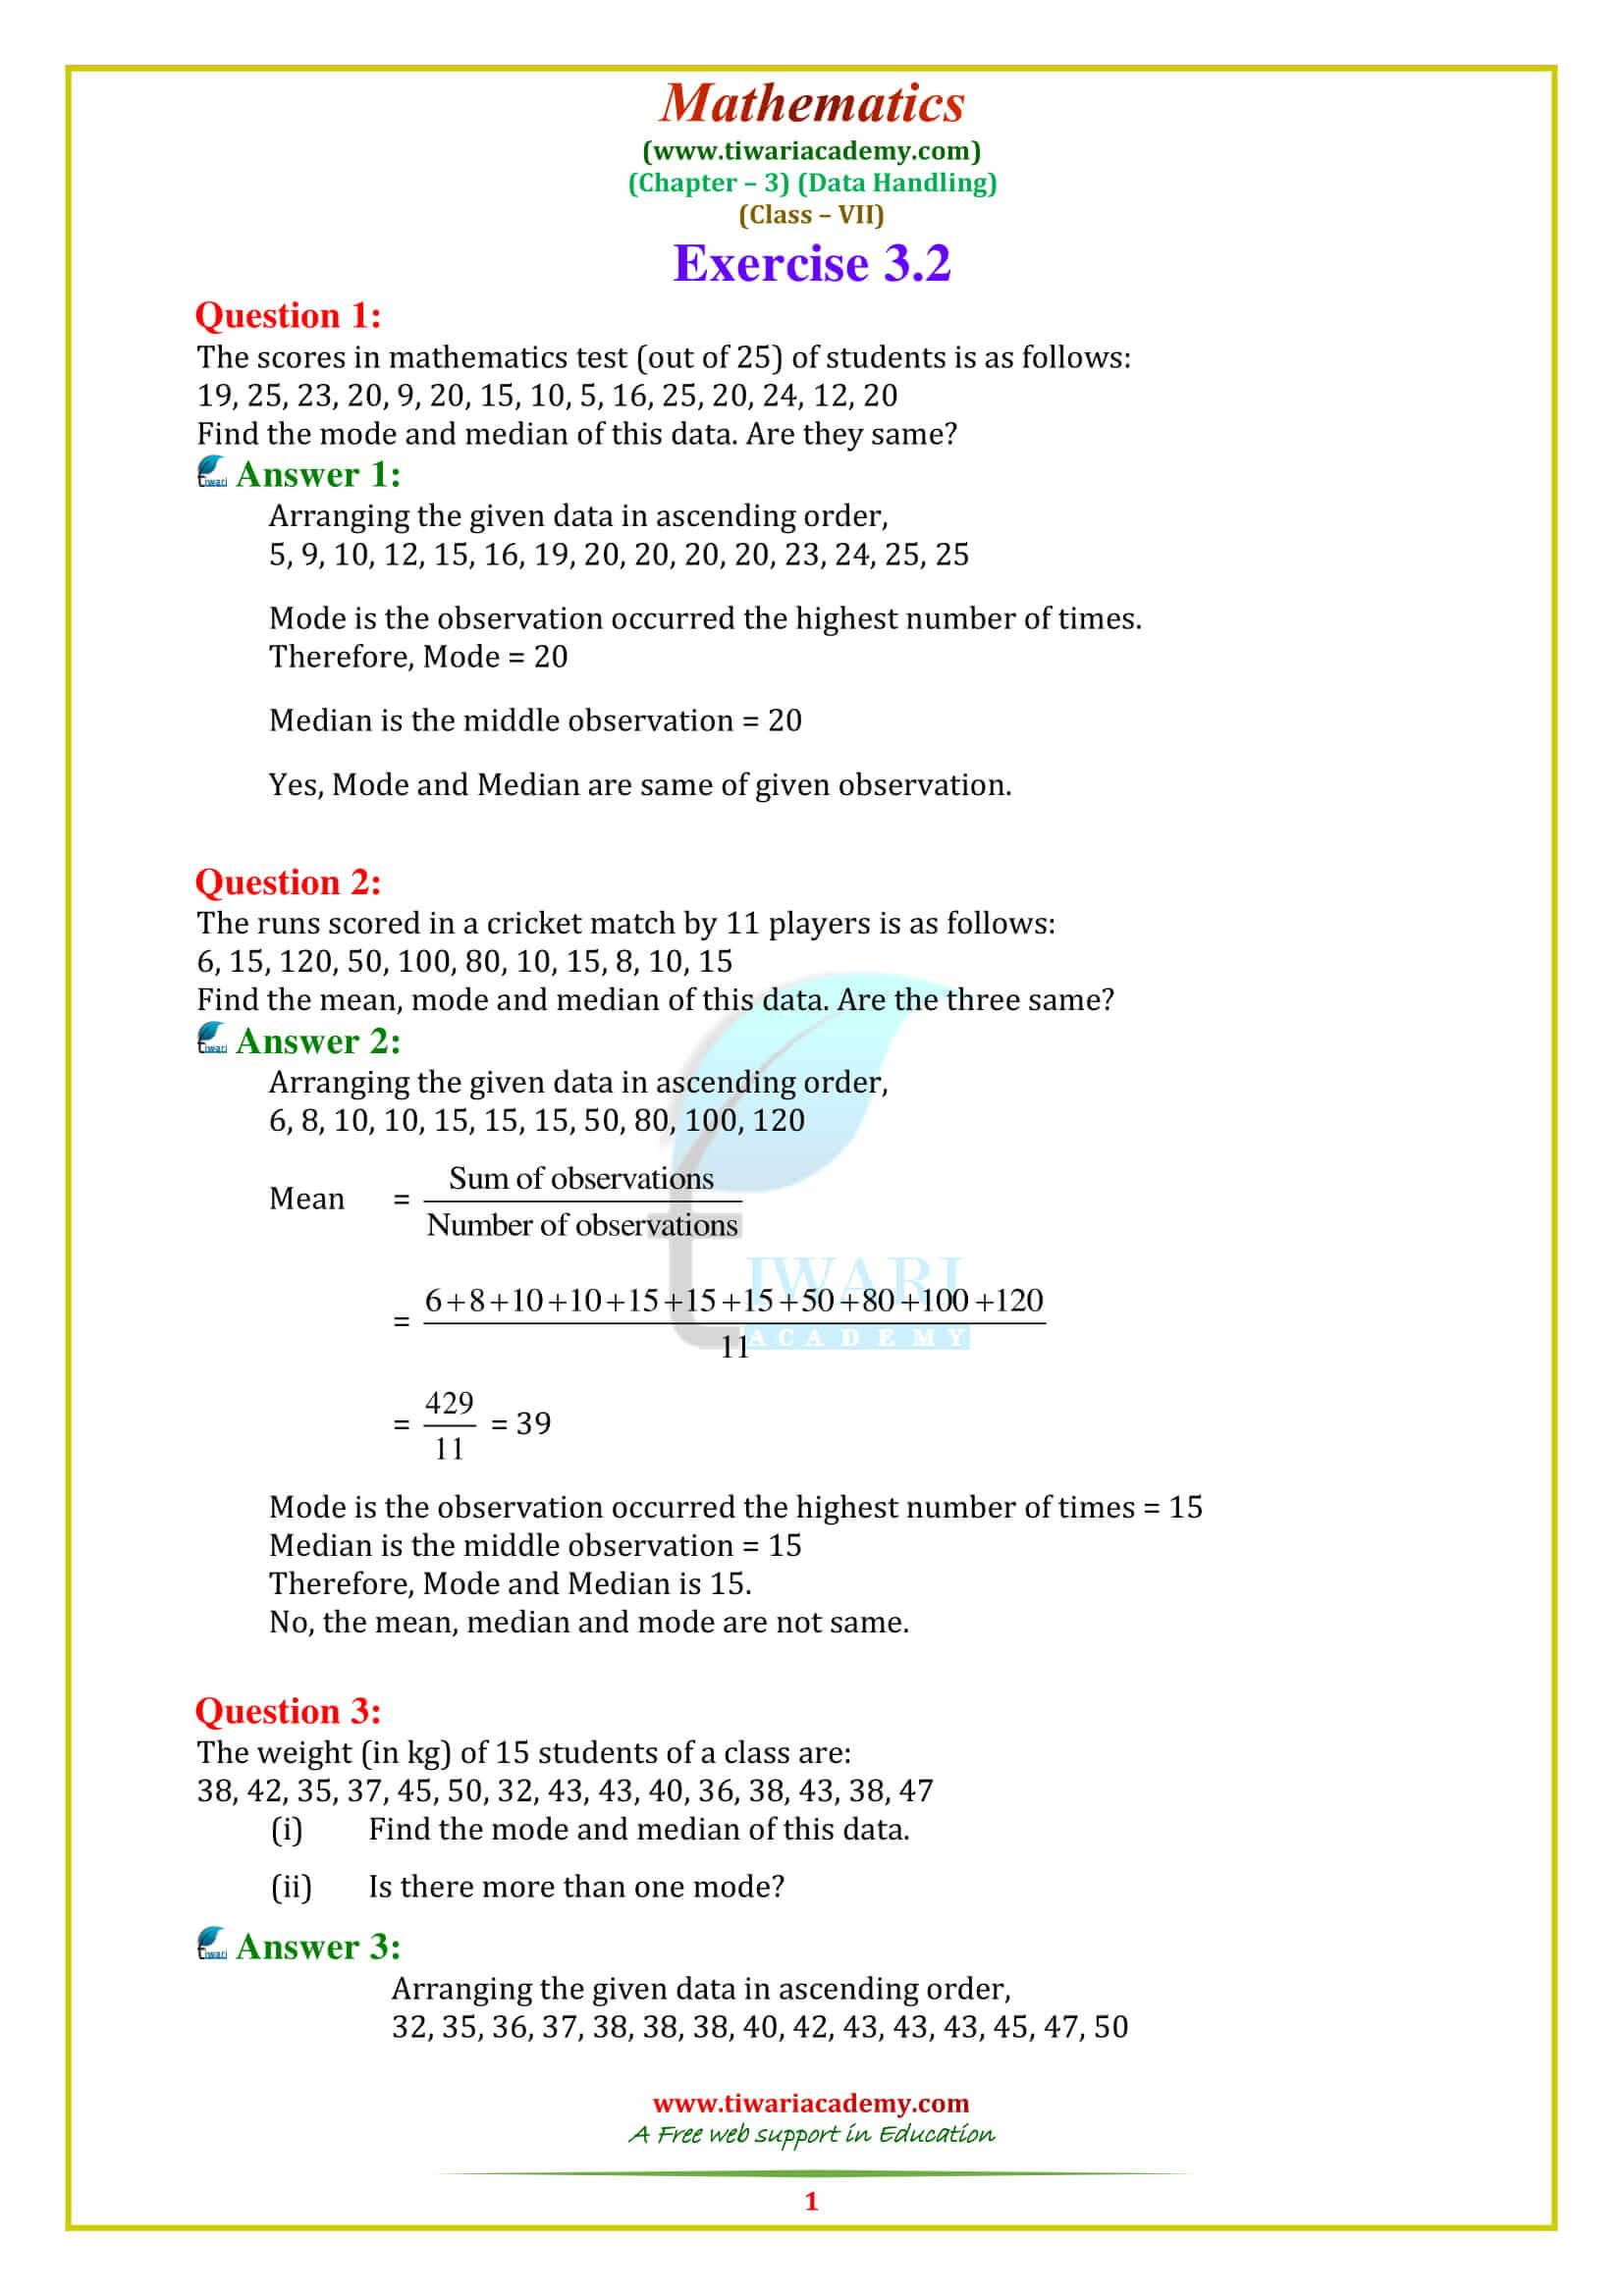 Ncert Solutions For Class 7 Maths Chapter 3 With Images Math